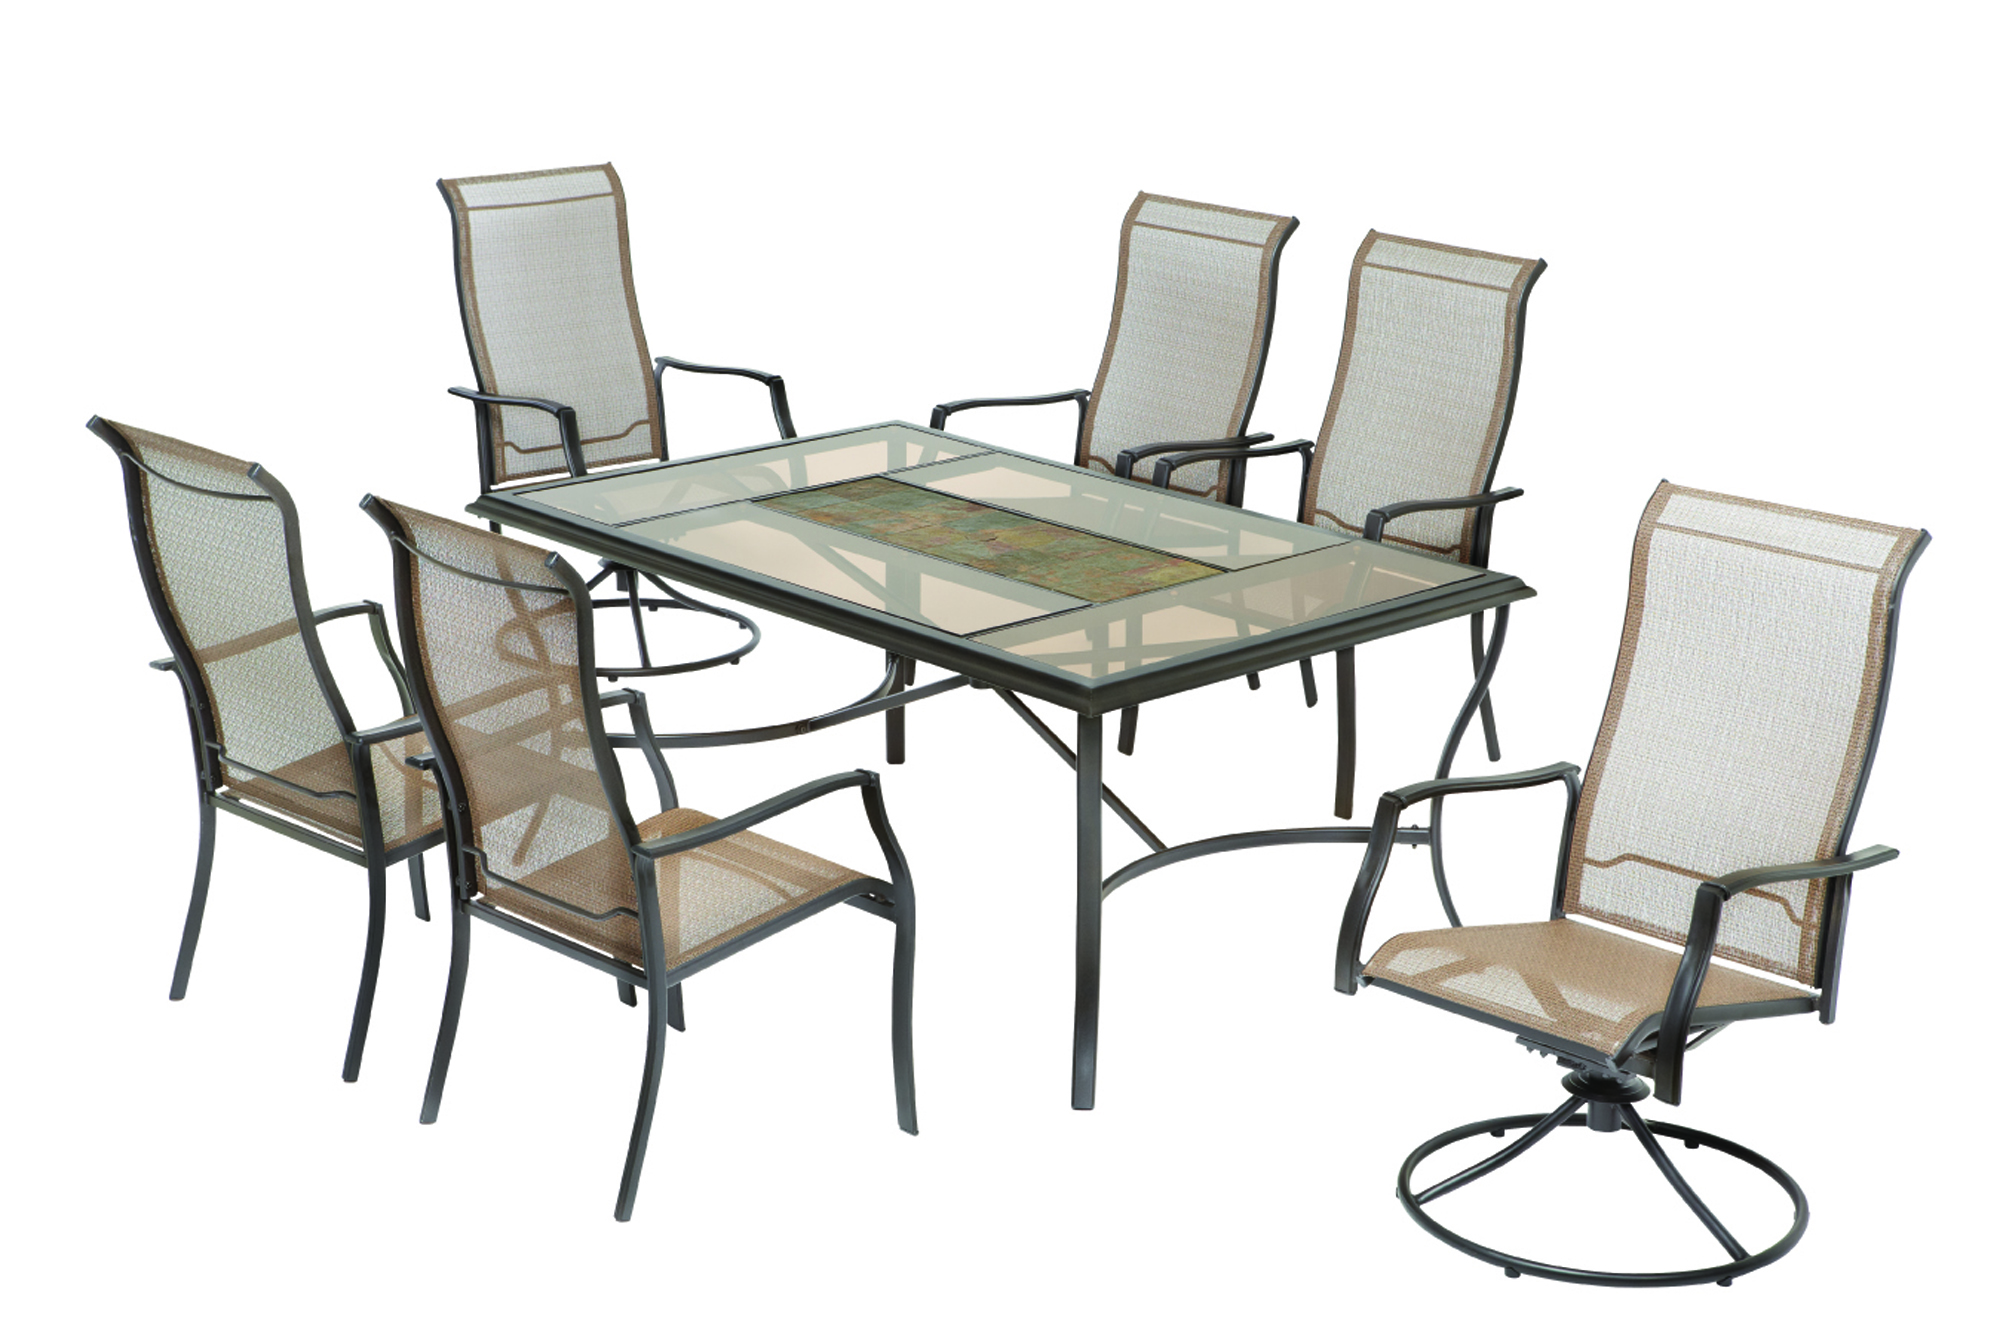 At Home Chairs Casual Living Worldwide Recalls Swivel Patio Chairs Due To Fall